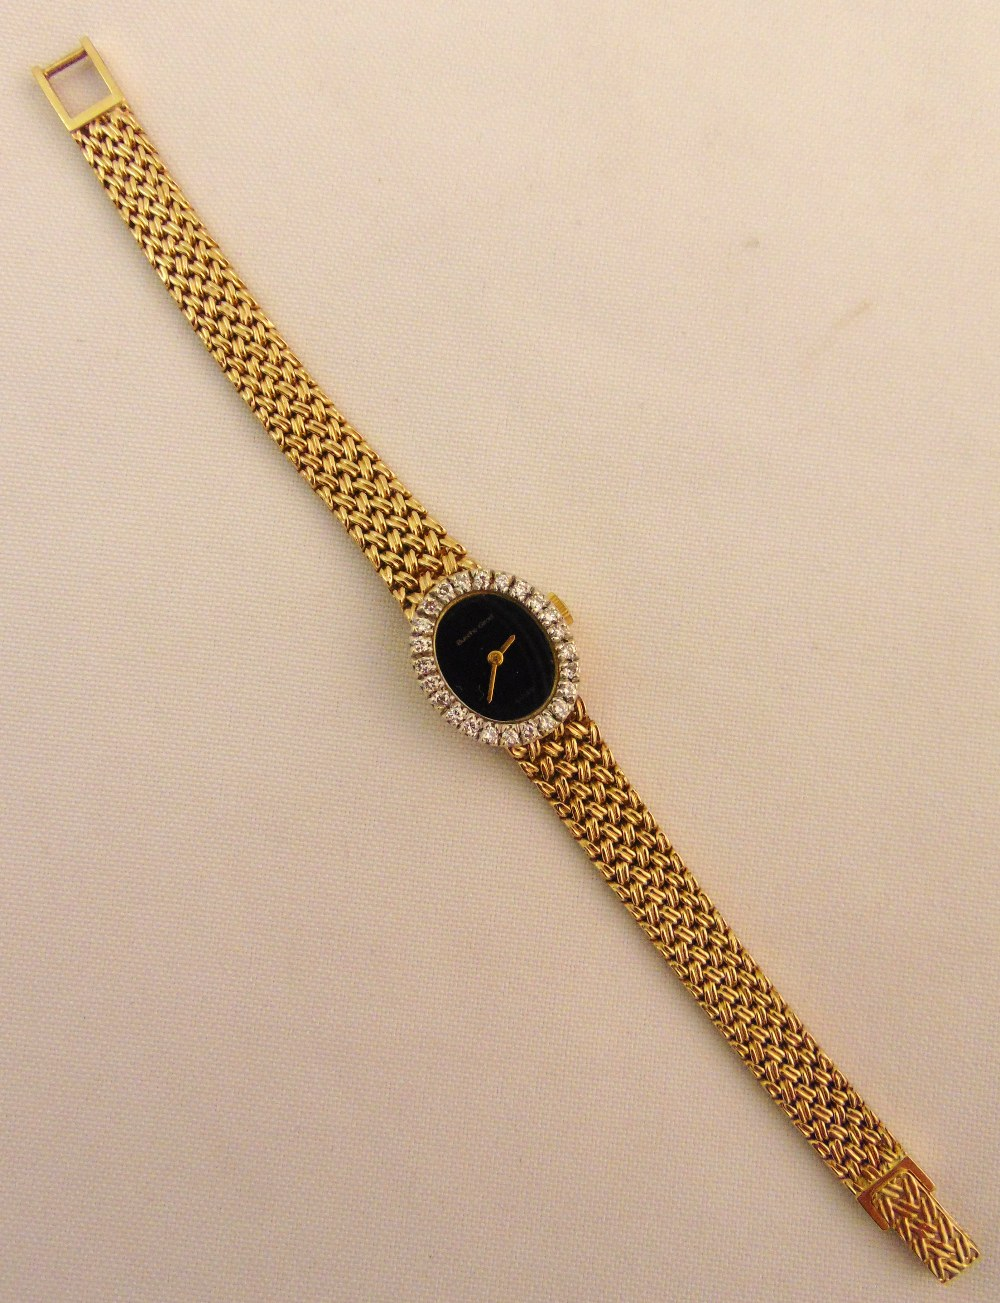 Bueche Girod 9ct gold ladies wristwatch with diamond bezel and integral 9ct gold bracelet, approx